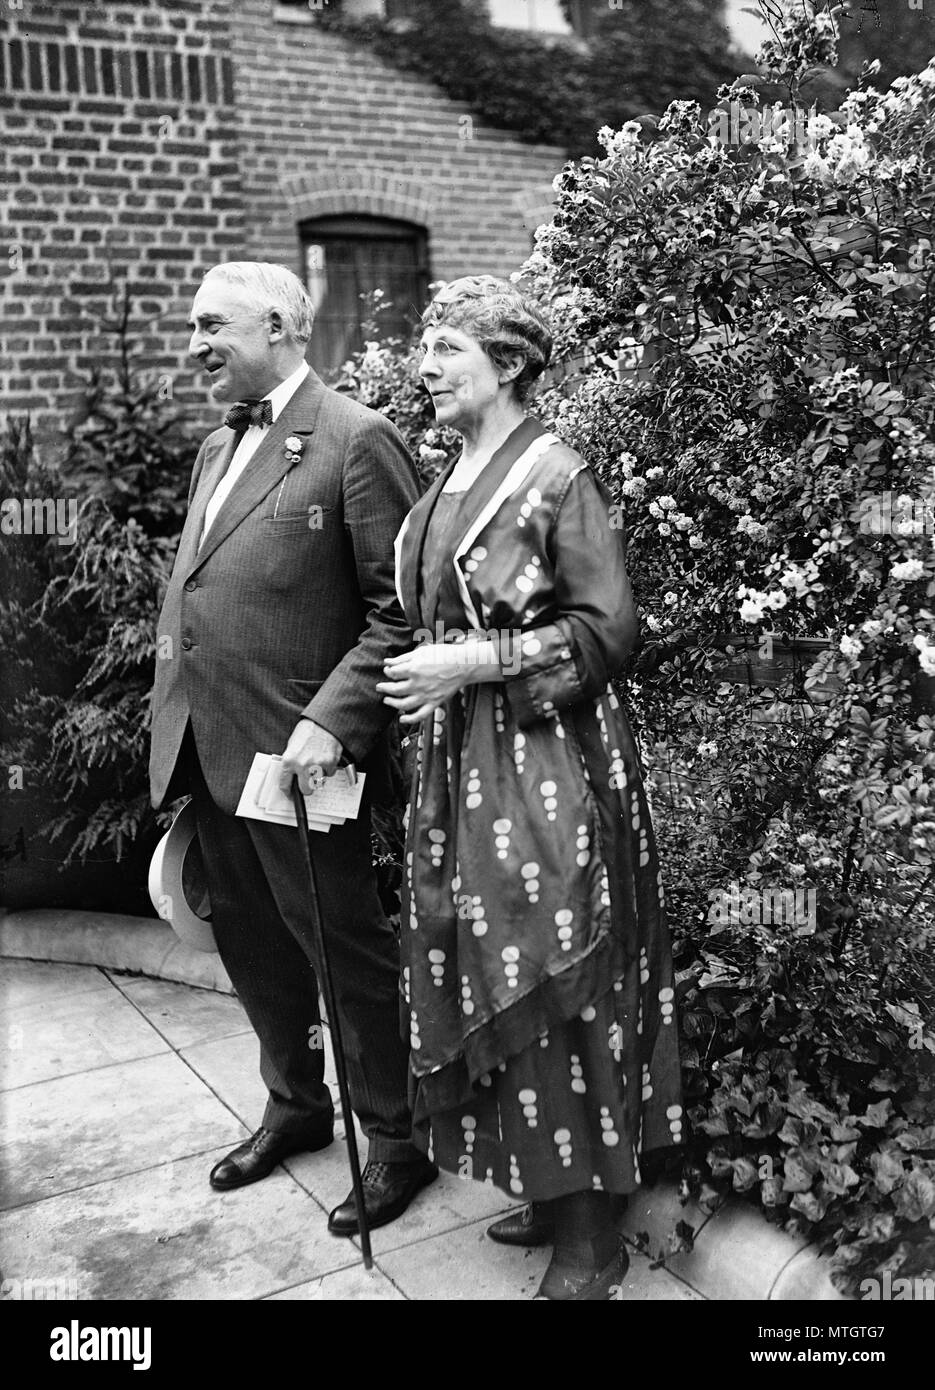 Warren and Florence Harding, circa 1920 - Stock Image